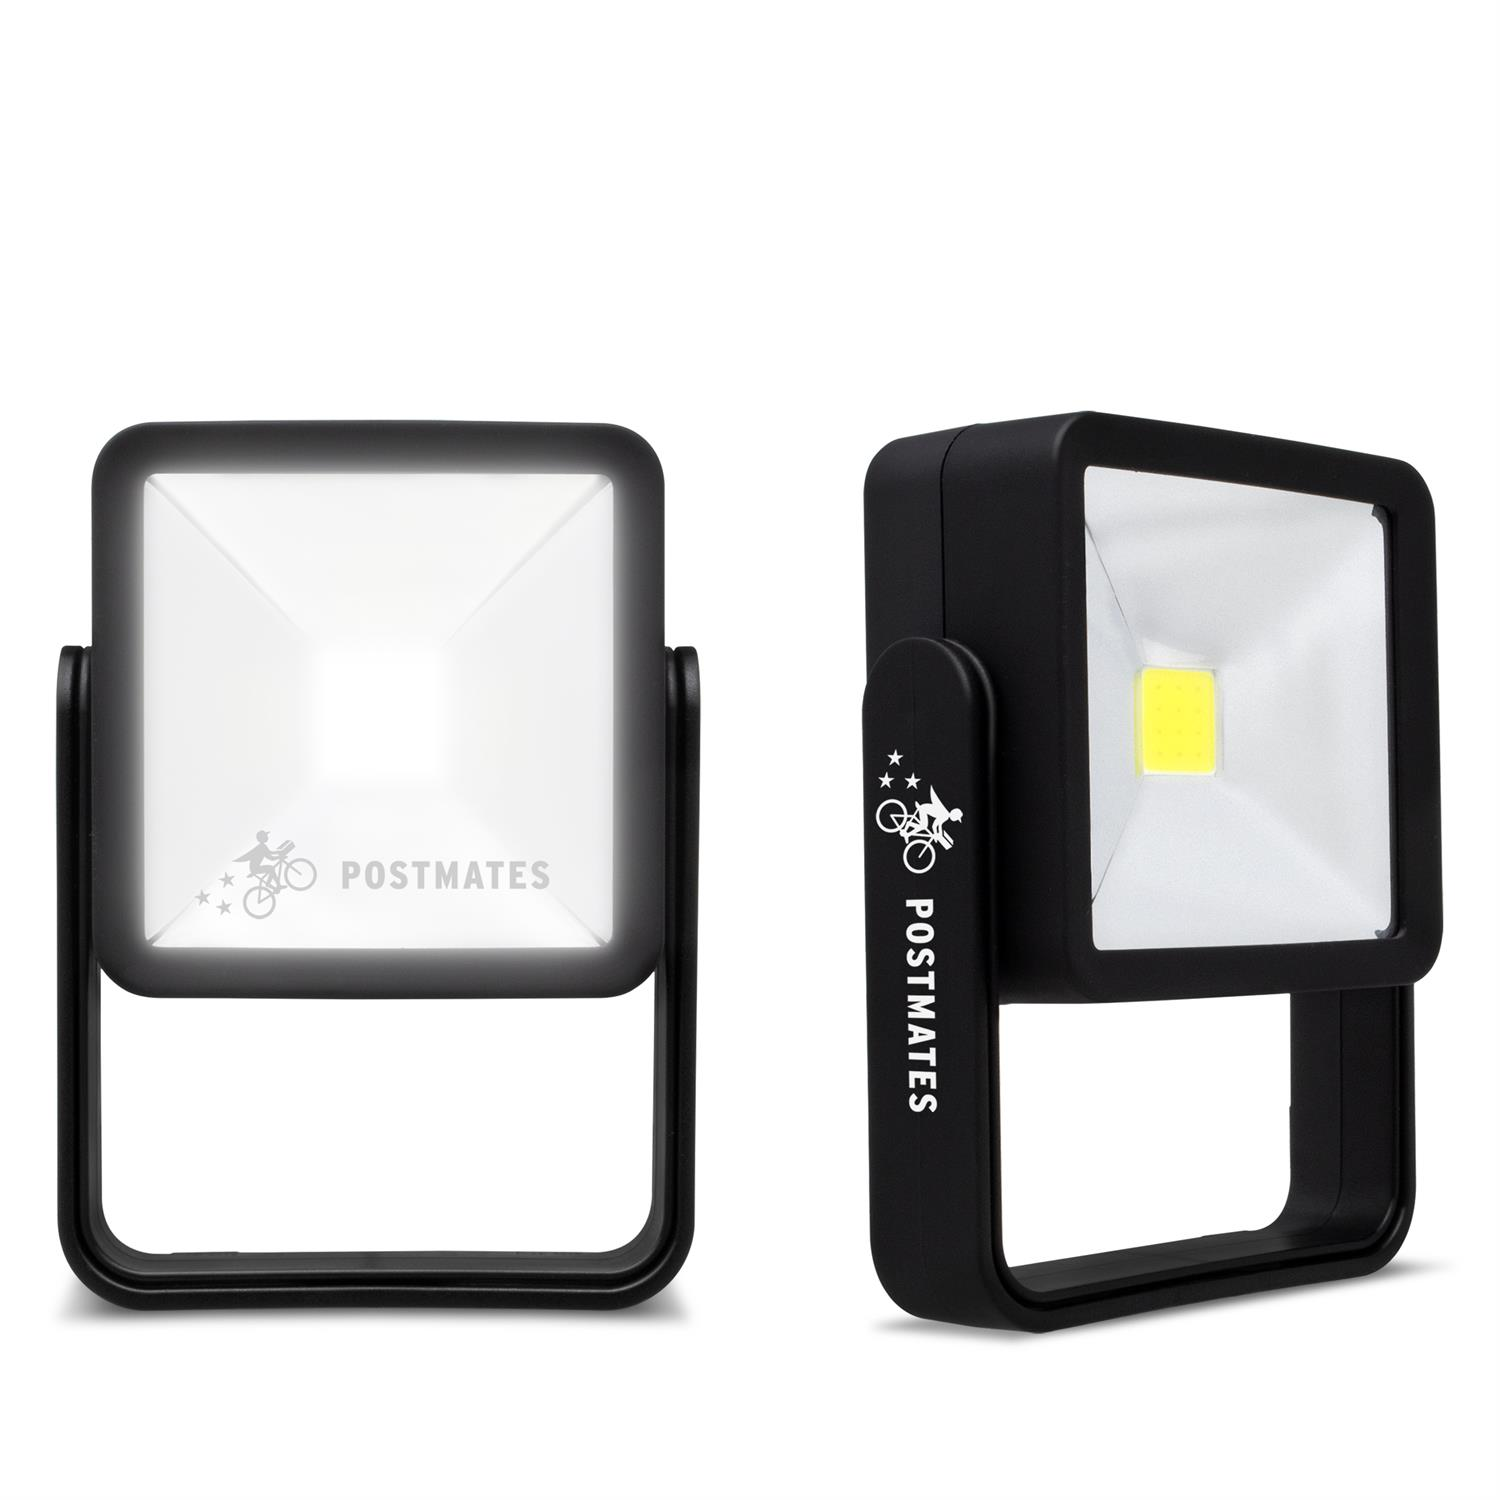 2973 - Square Worklight